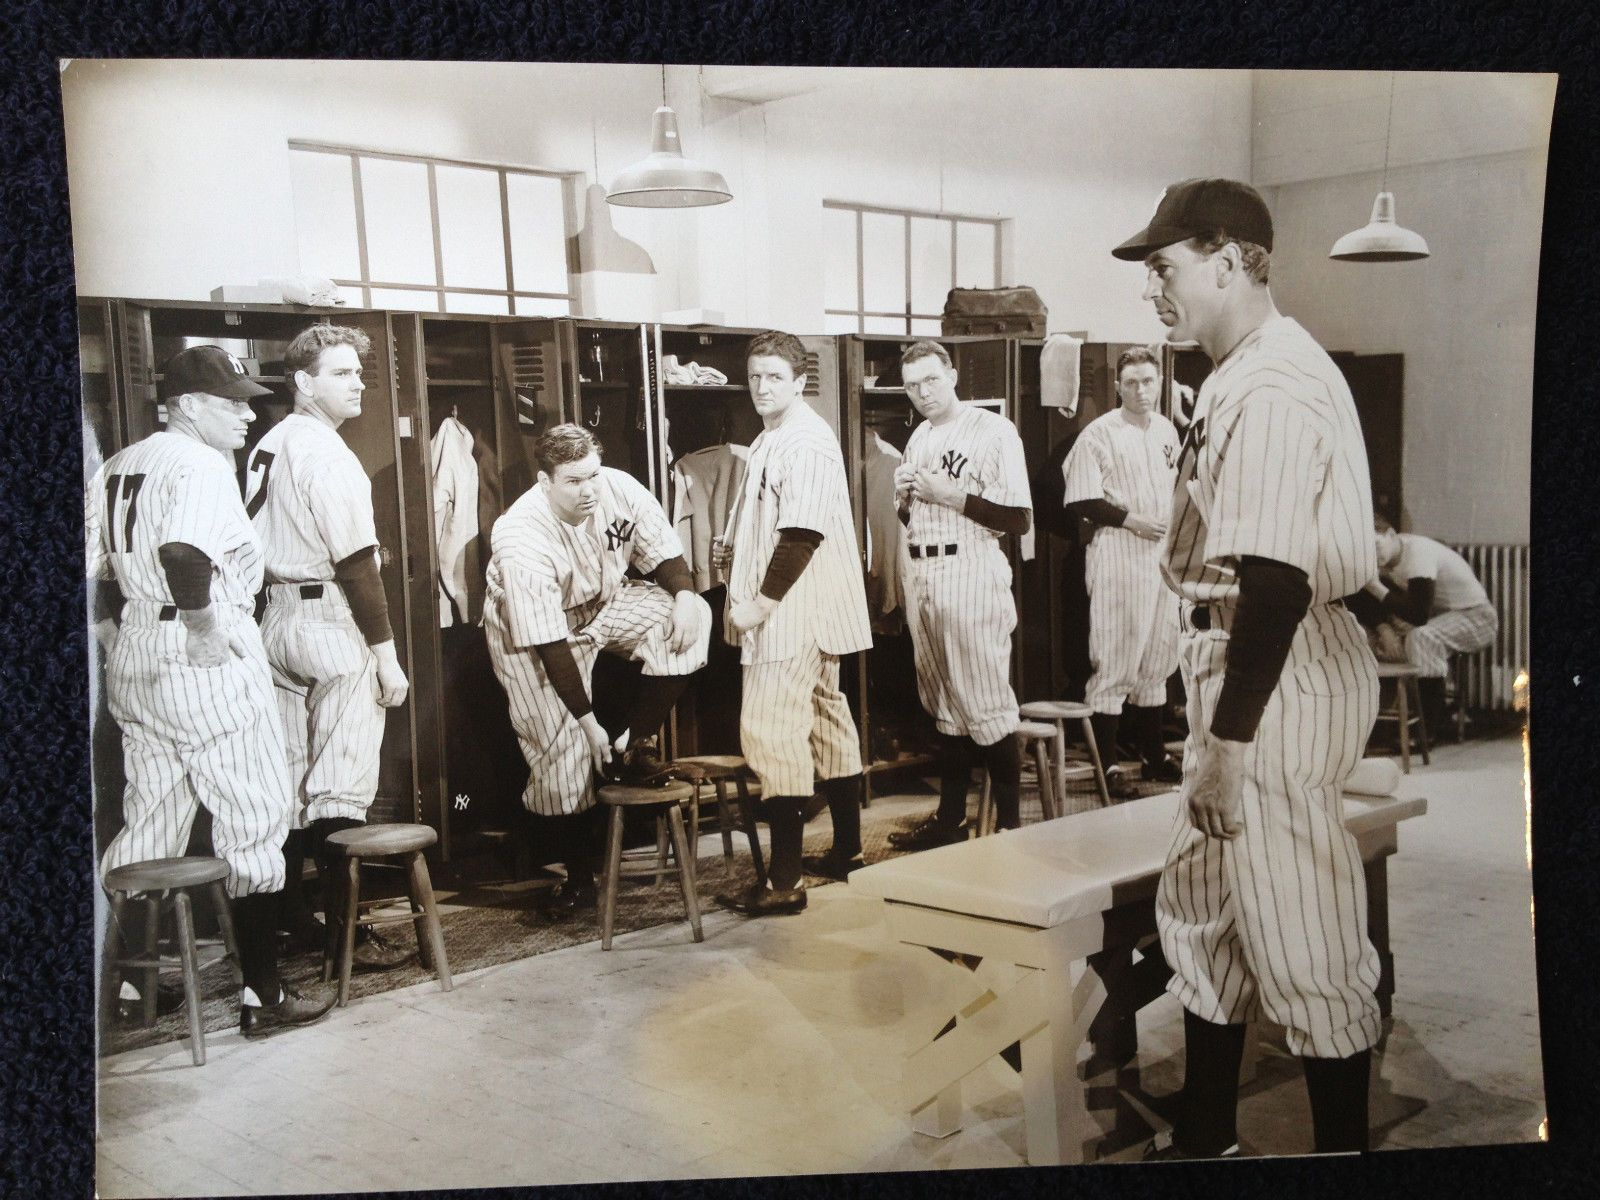 Vintage Baseball Locker Room Entrance